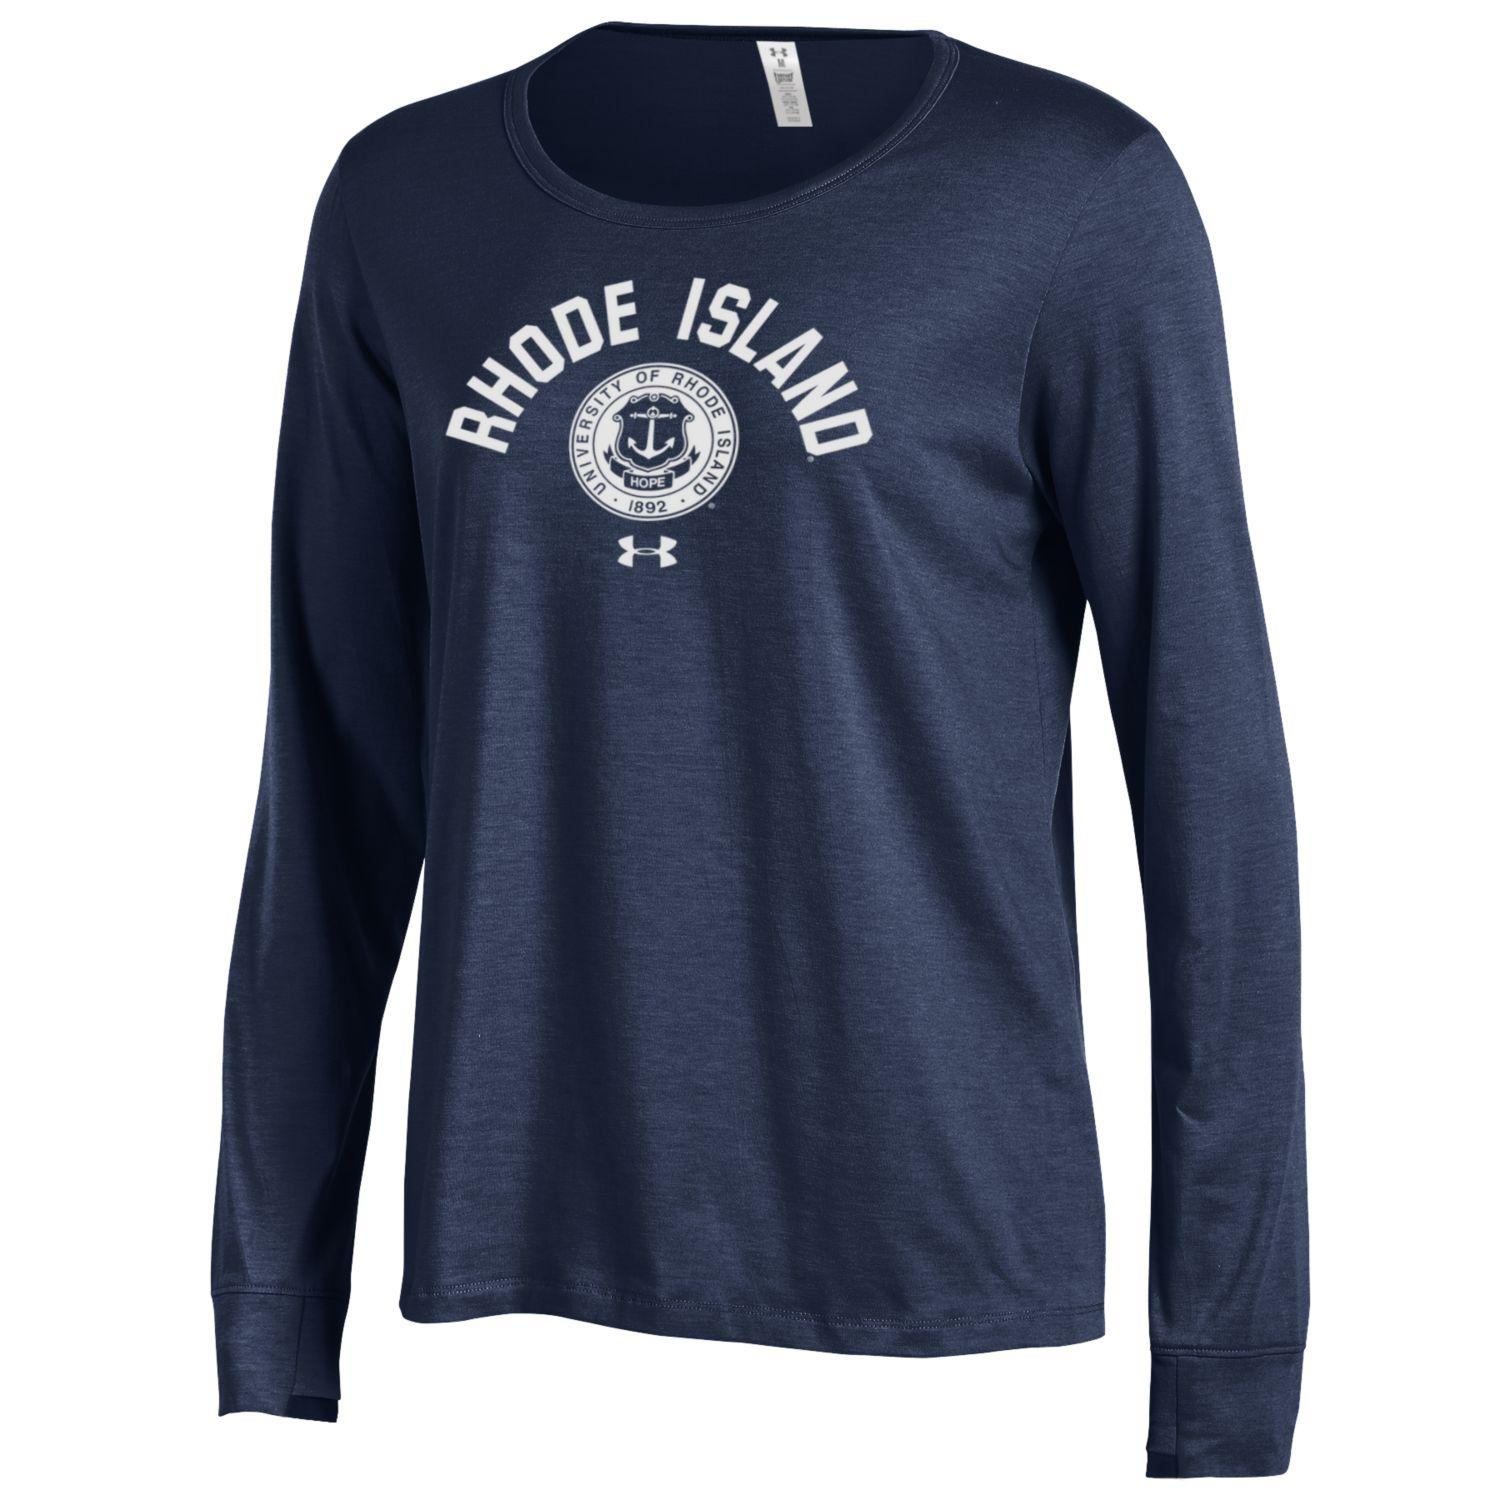 Cover Image For Under Armour Women's L/S Tee